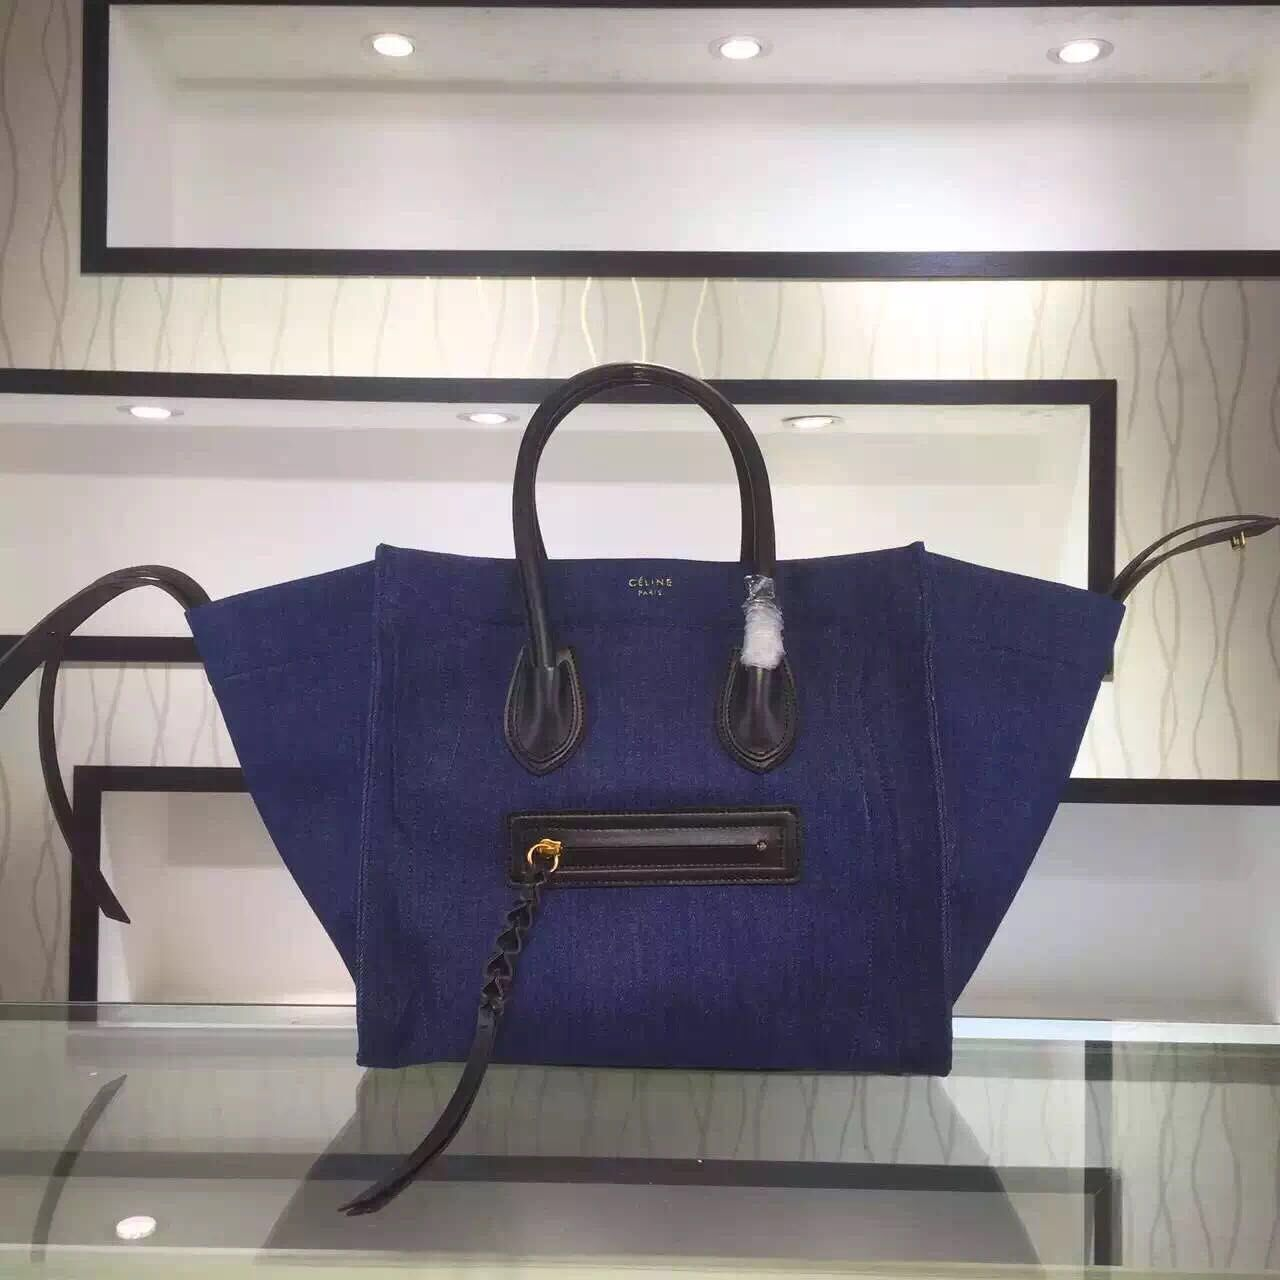 S S 2016 Celine Cheap Bags Outlet Online -Celine 30CM Luggage Phantom  Handbag in Black Leather and Navy Blue Canvas 1c9beebe5f769